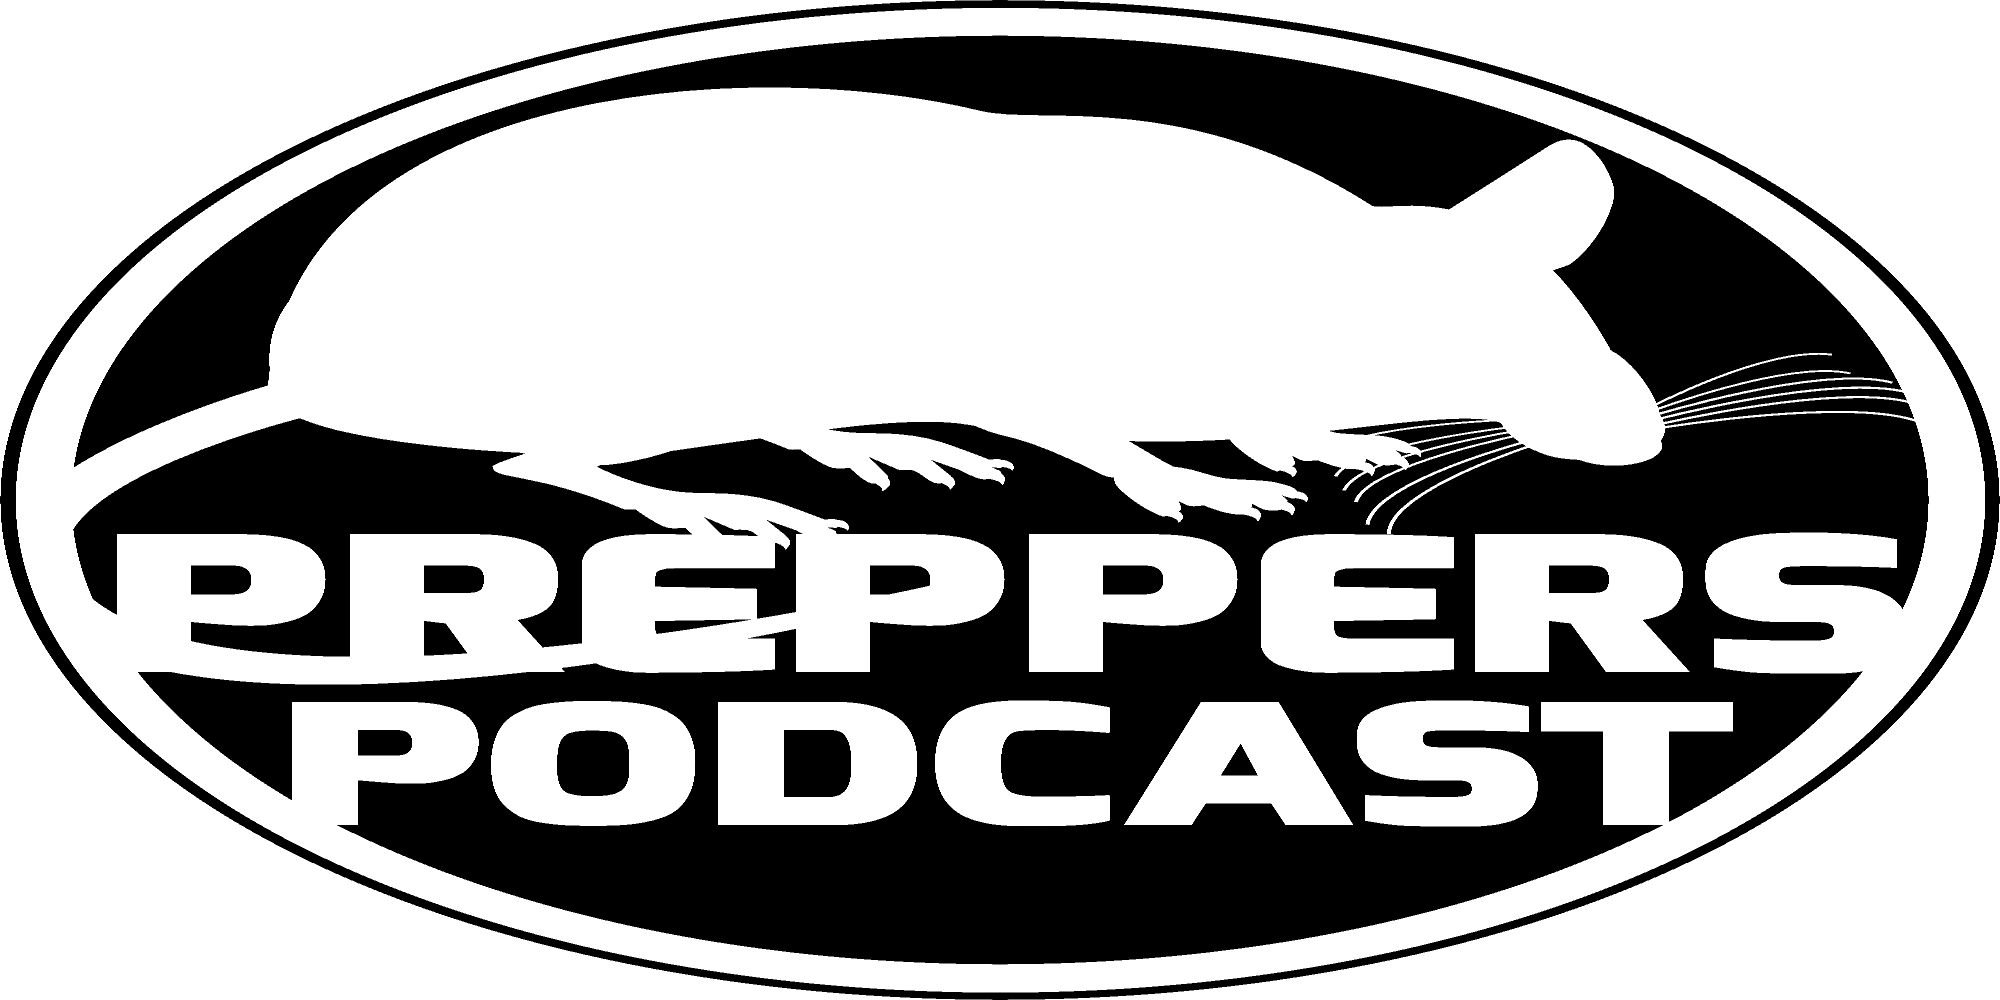 Preppers Podcast